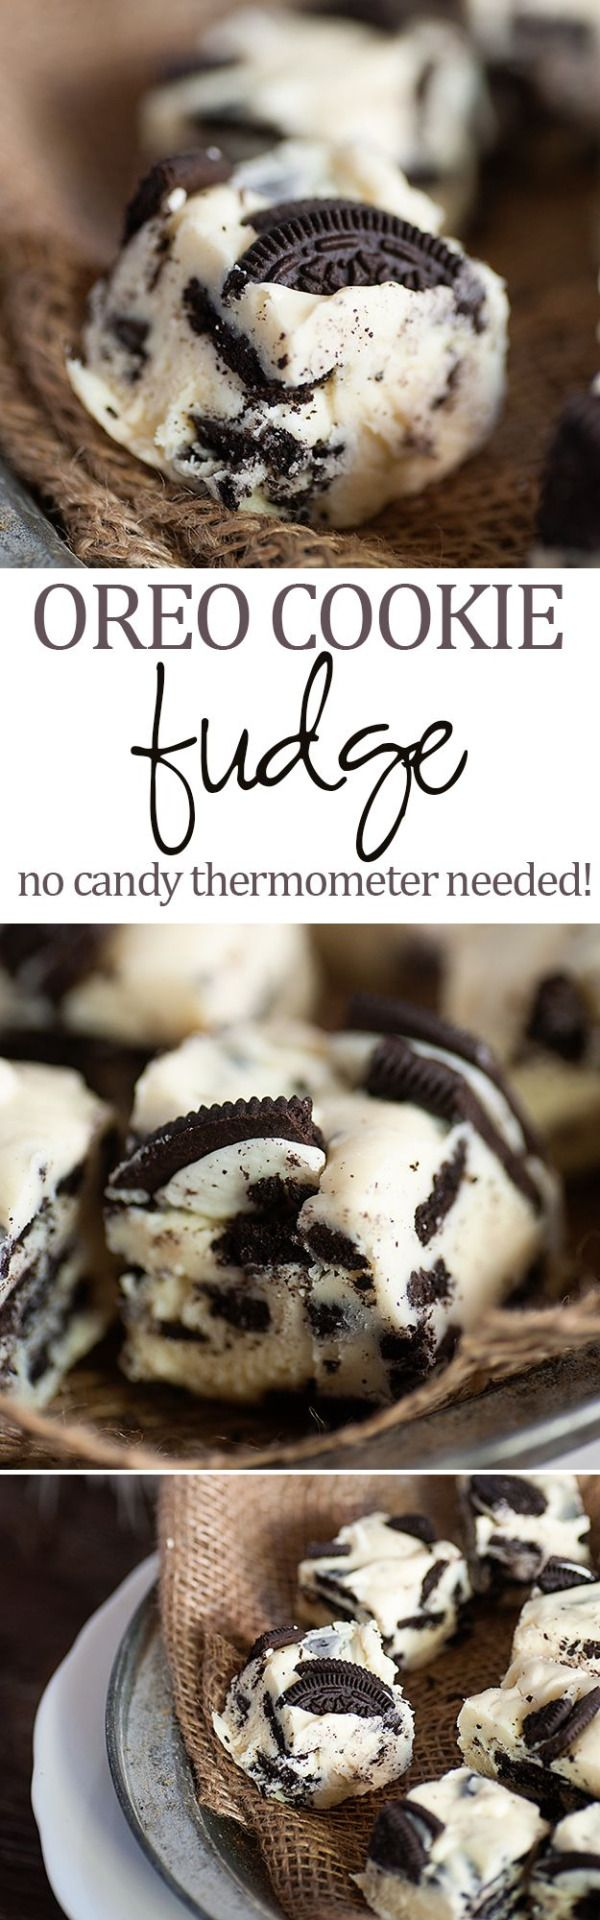 Easy 5 ingredient Oreo fudge recipe! Perfect for your Christmas cookie and candy tray!View The Recipe Details